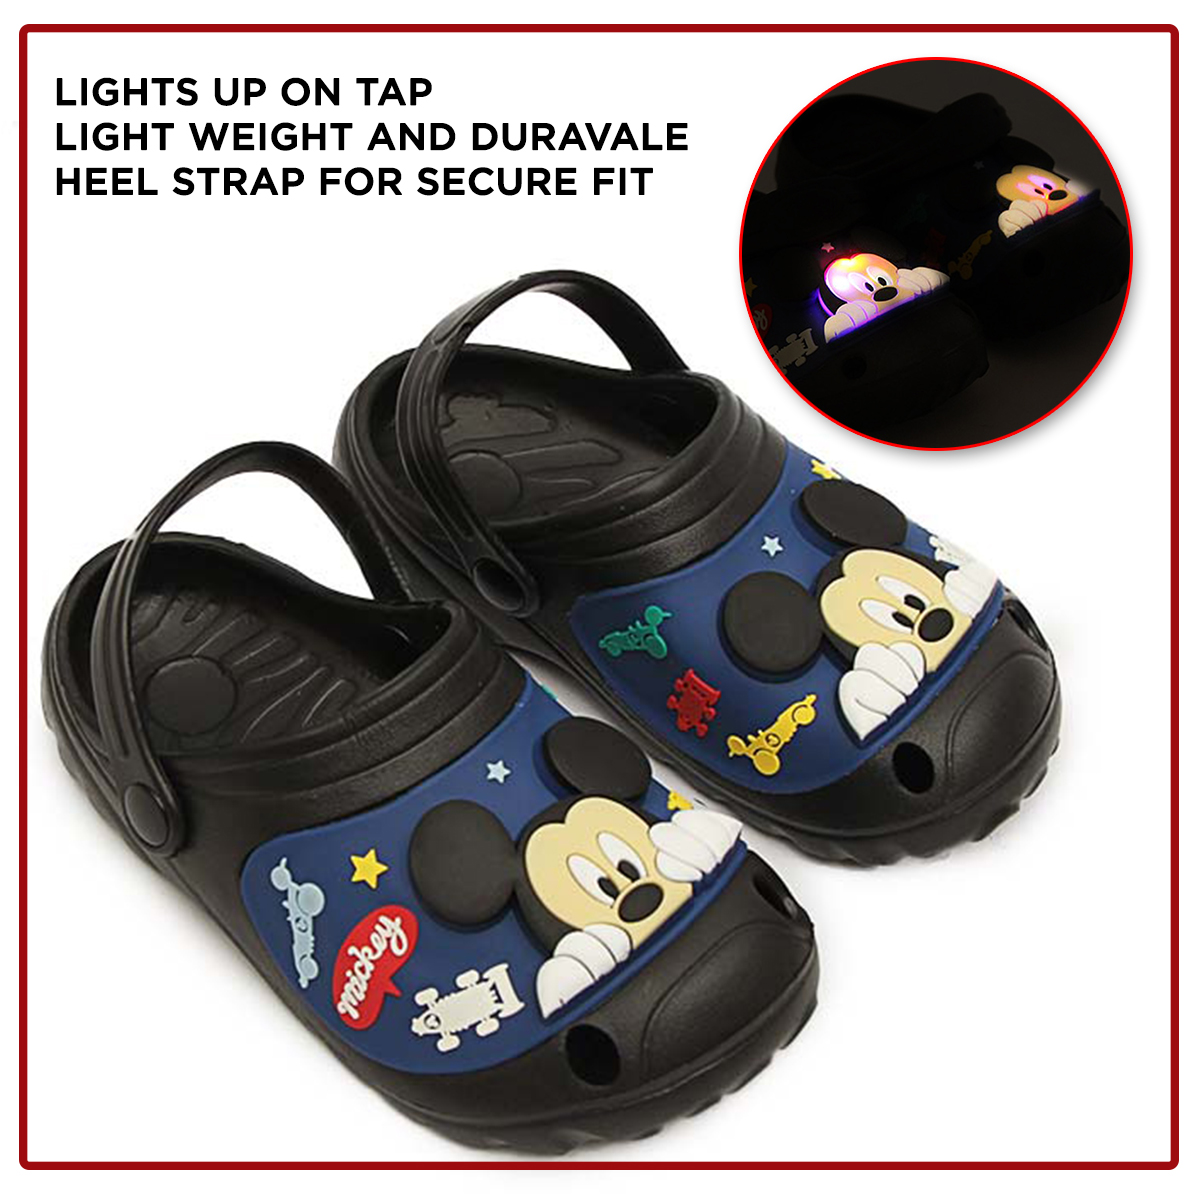 Imported Cartoon Characters Summer Crocs Clog Slippers Sandals & Chappal With Light Blink For Your Kids - Non Slip Sandals Easy to Wear